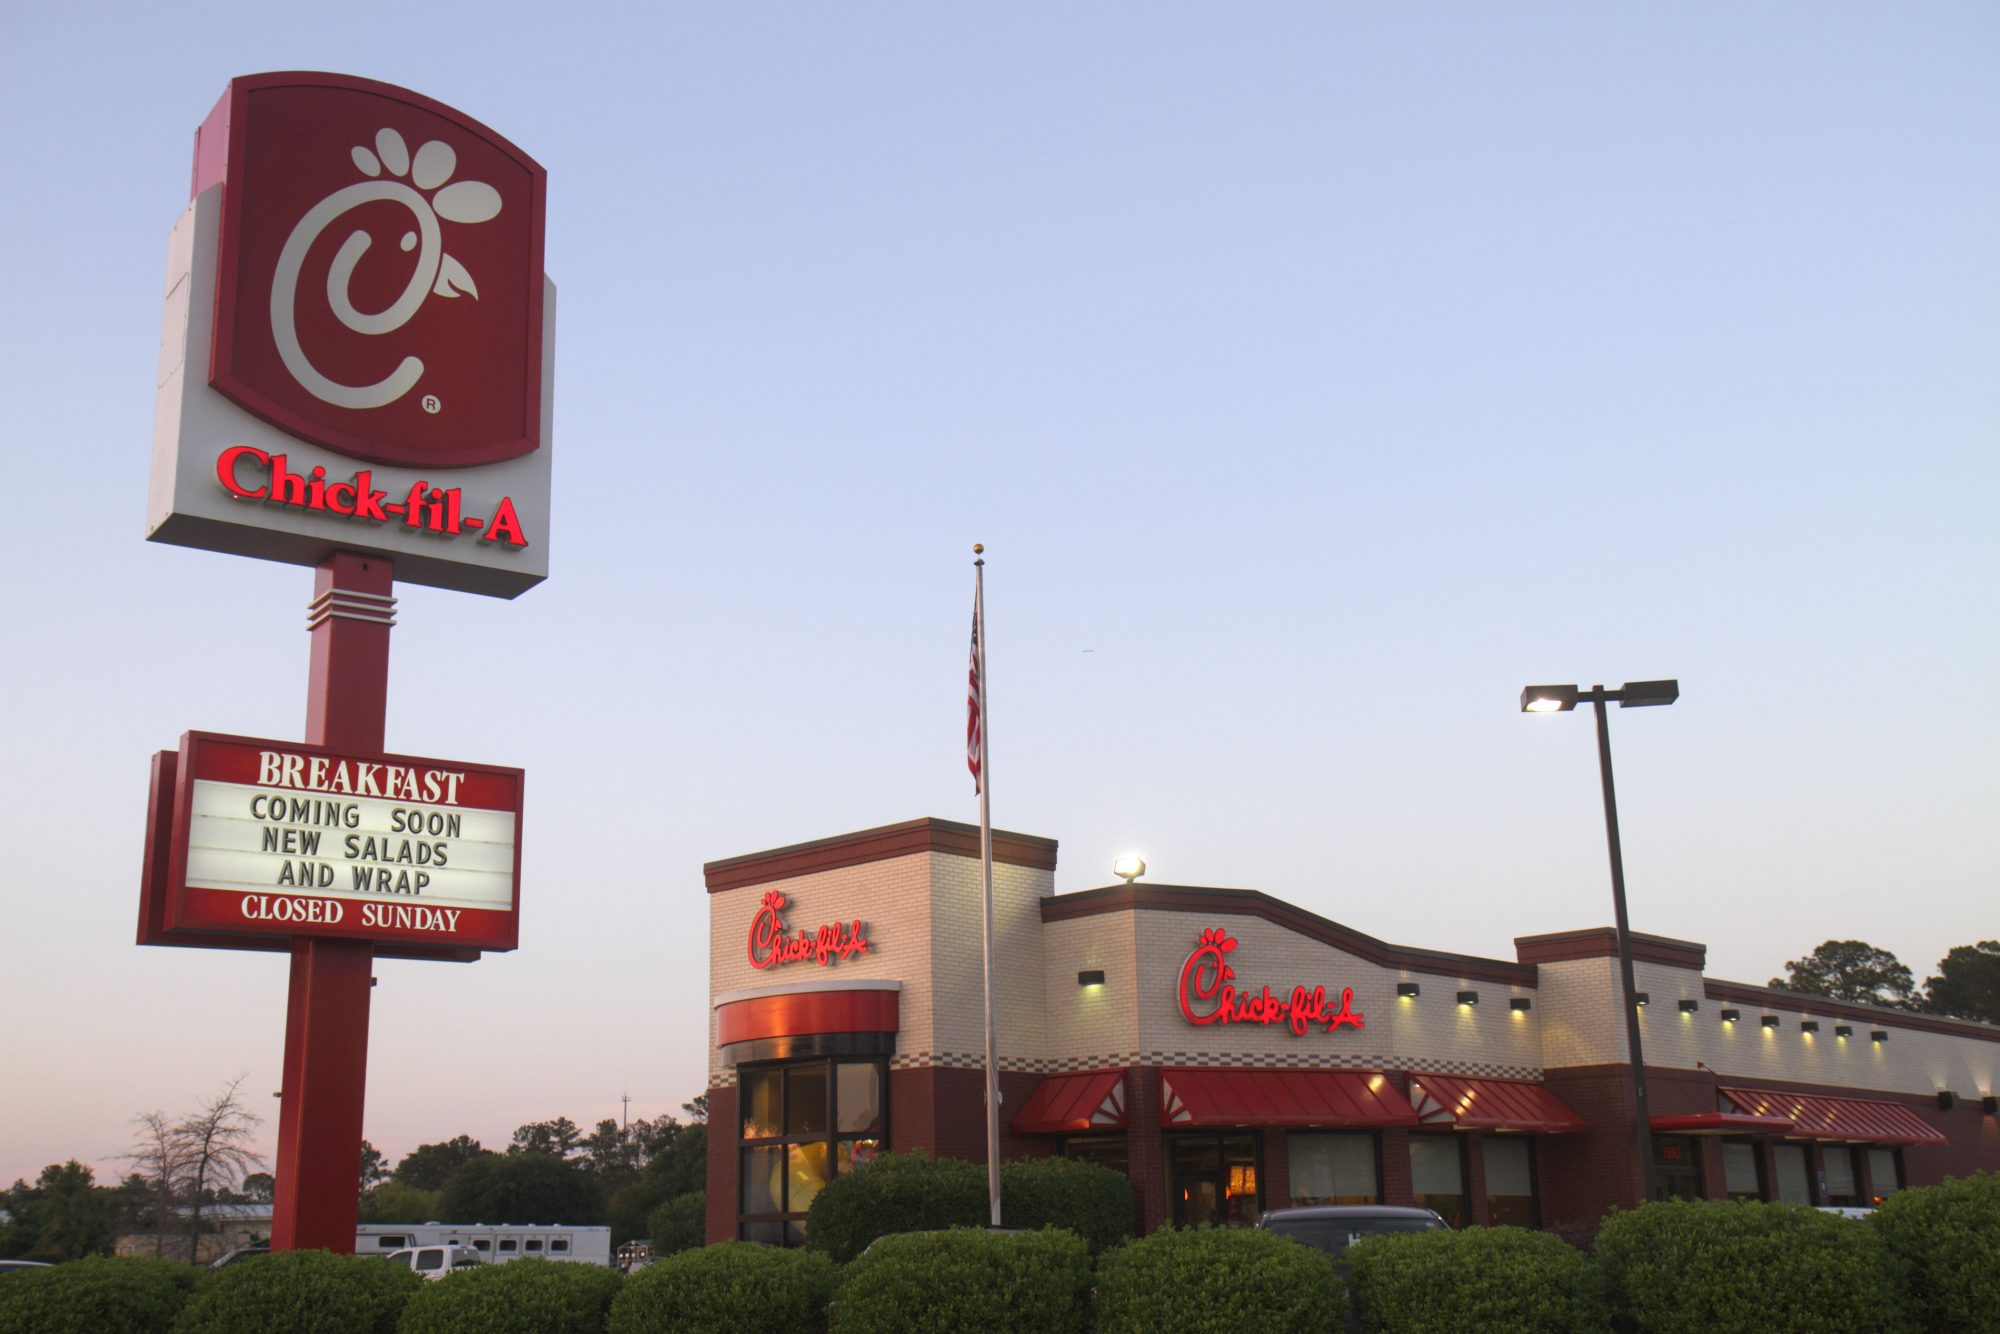 This Is the Busiest Time to Visit Chick-fil-A